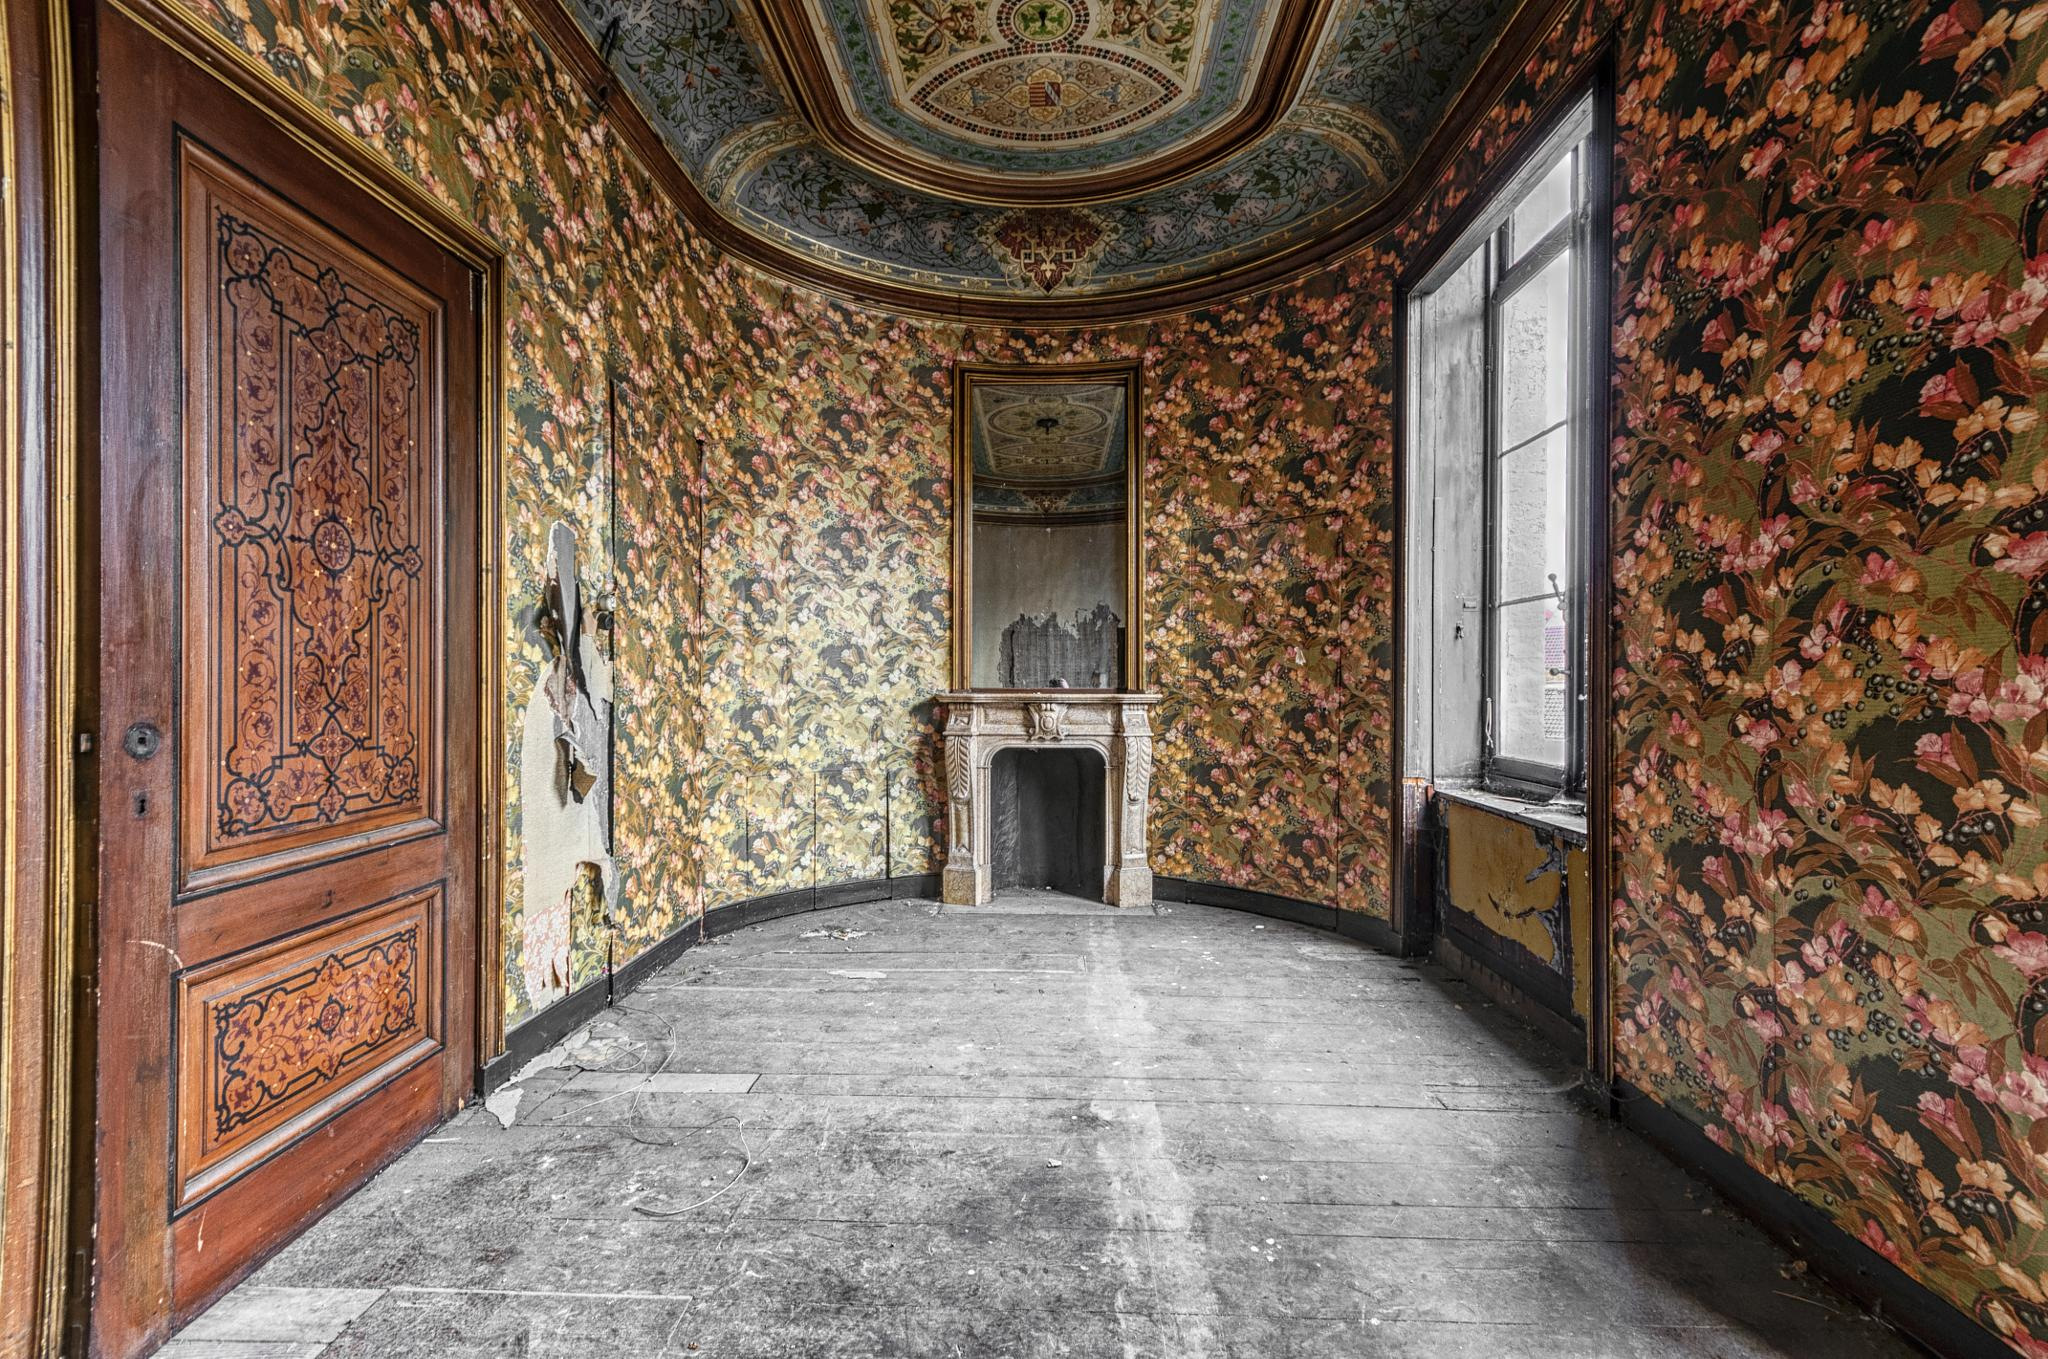 Inside the decay .. the oval room by Joël Arys